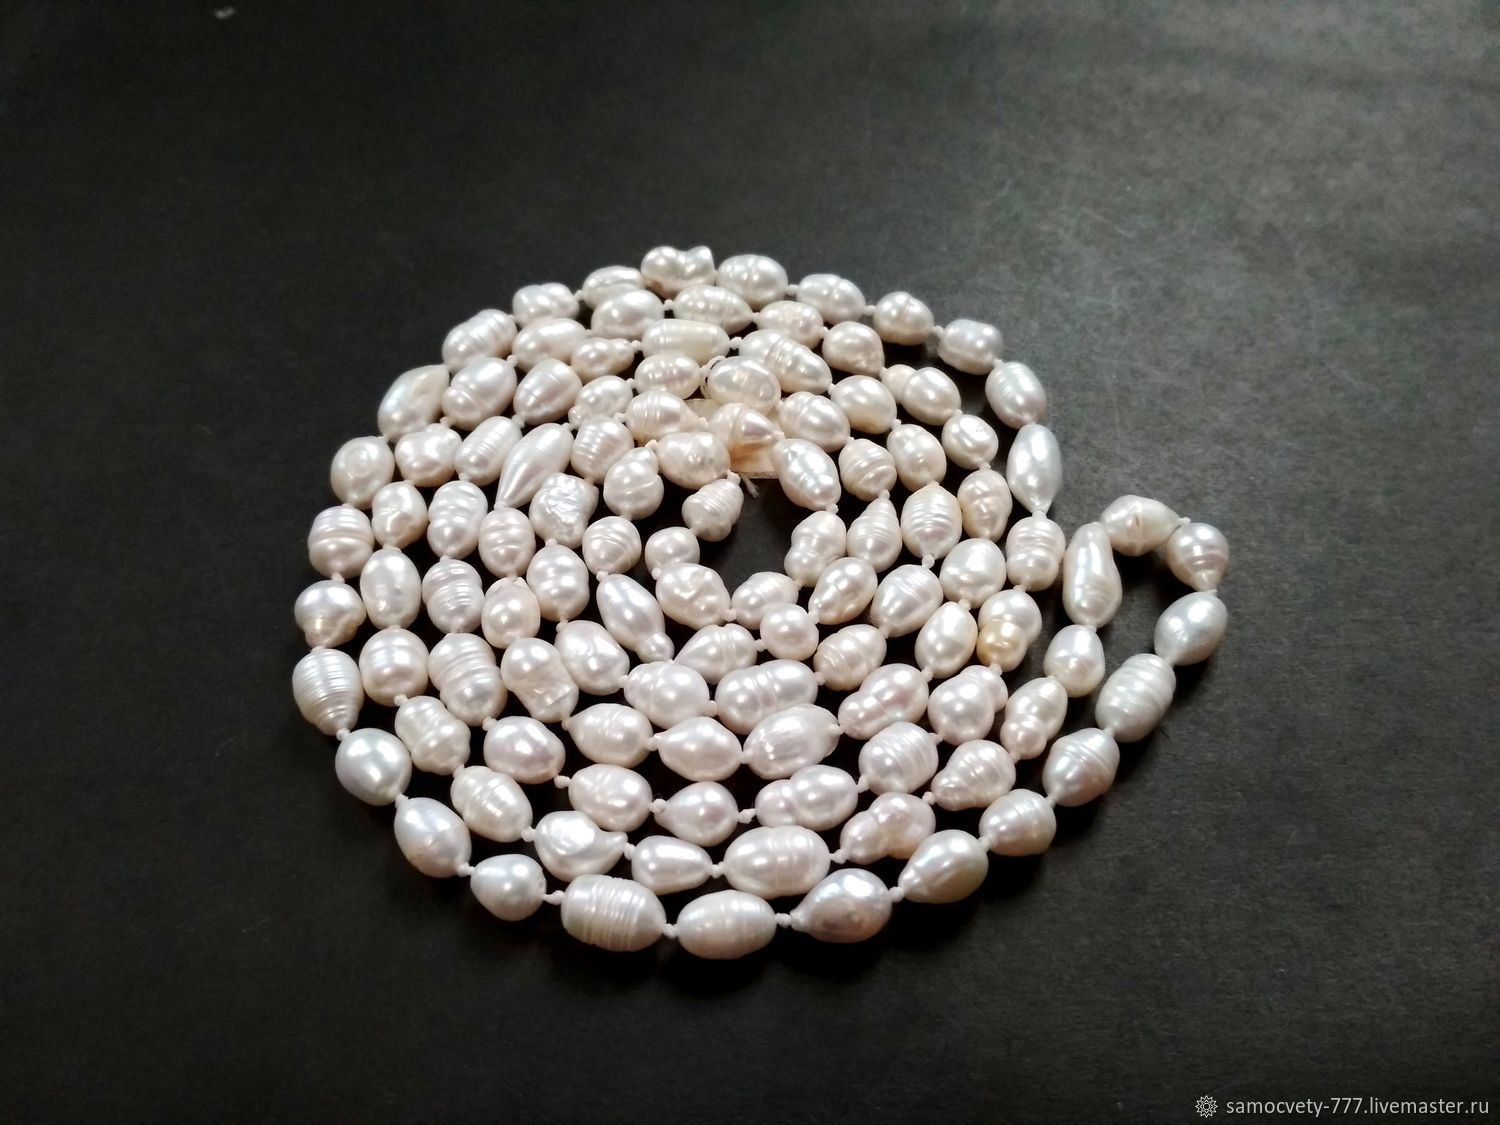 long necklace of natural pearls, 'pearl', Necklace, Feodosia,  Фото №1